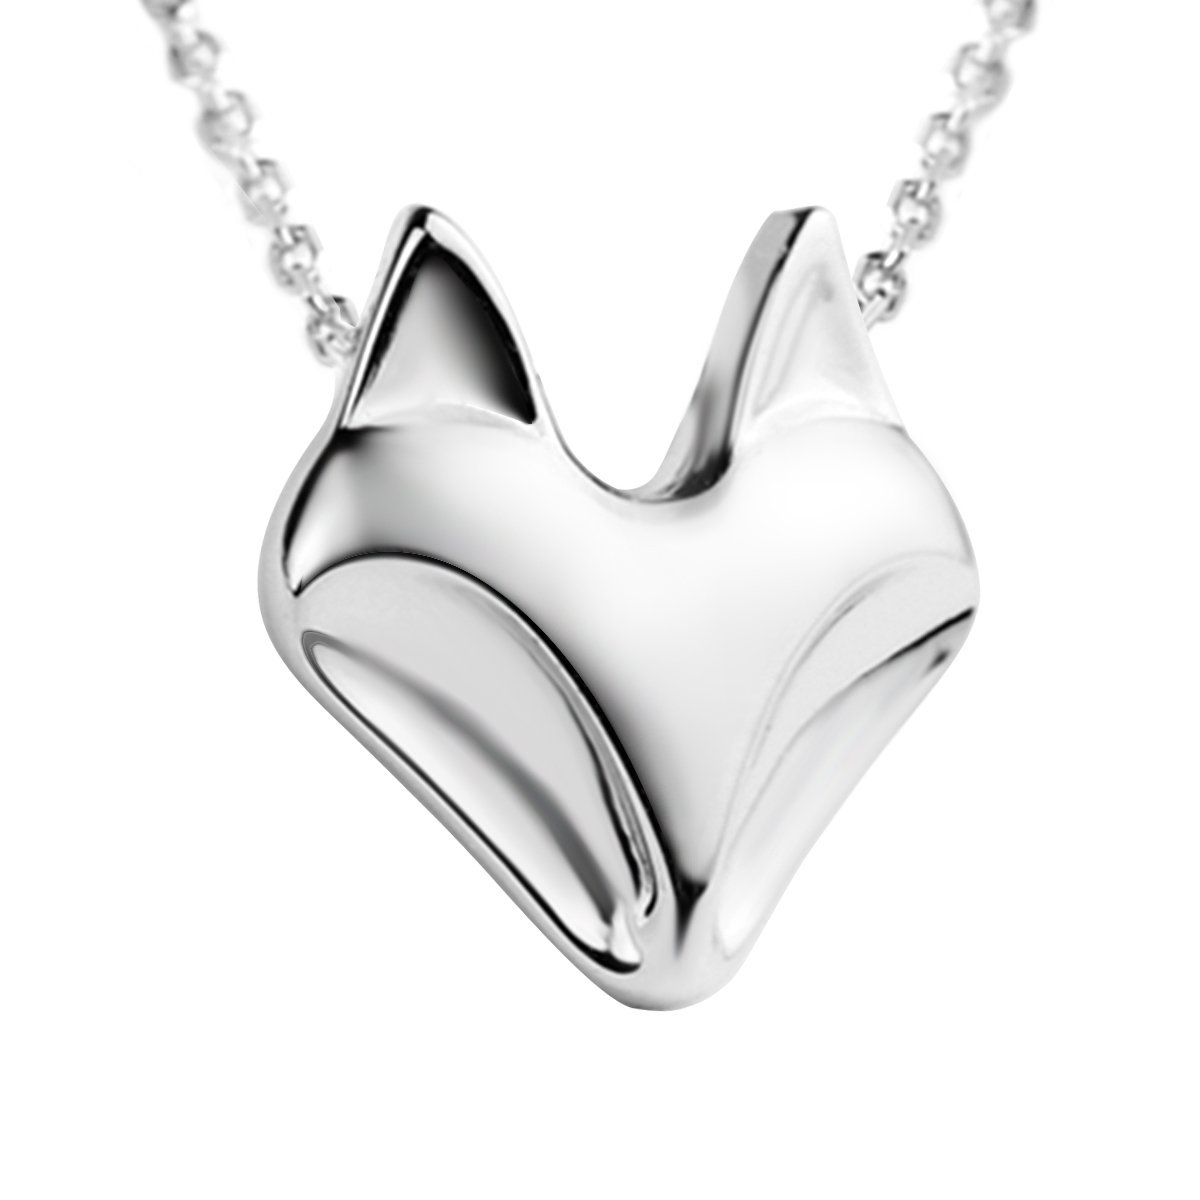 JEWME Fine Jewelry 925 Sterling Silver Women Fox Pendant Necklace High Polished